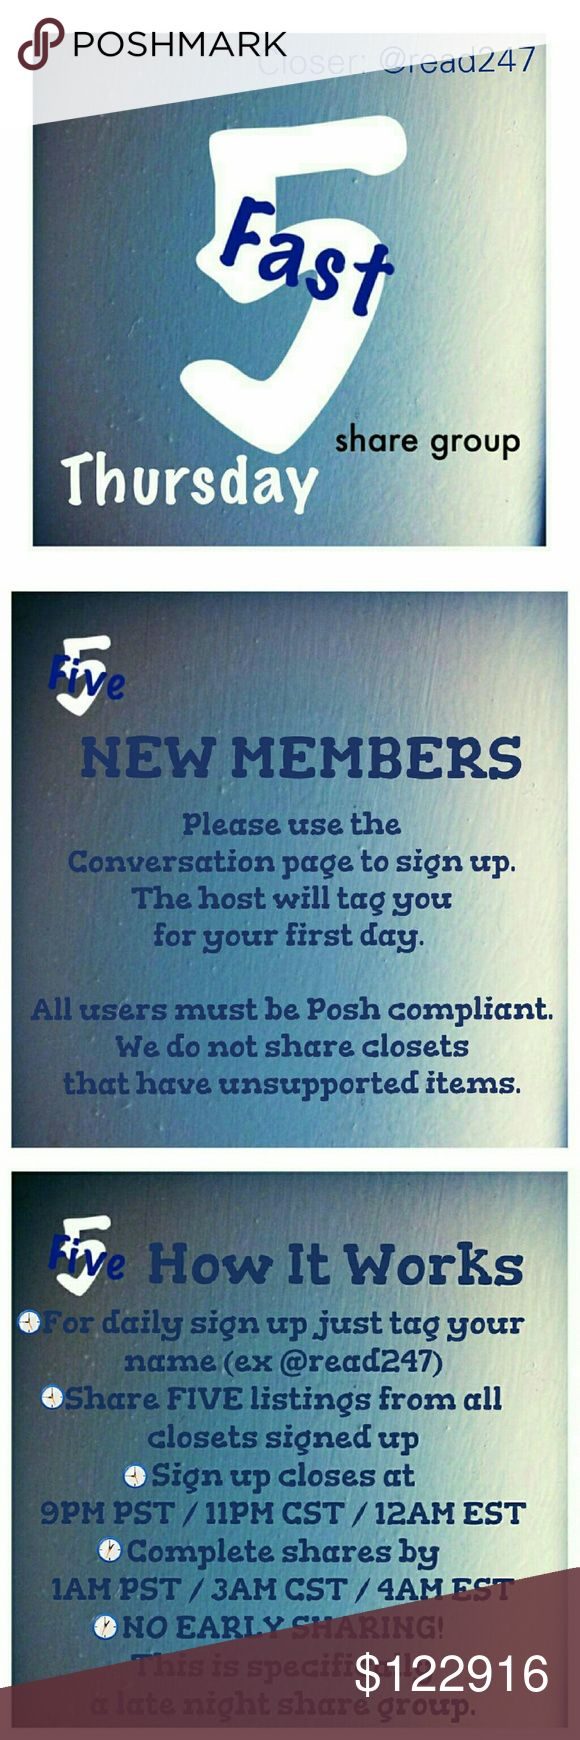 ⏳Thursday, 12/29, Fast 5 Sign Up Sheet⌛ 🌃New group members please sign up on the Conversation page. 🌃POSH COMPLIANT CLOSETS ONLY! 🌃If you have any ?s please use the conversation page. 🌃Share FIVE available listings. 🌃Sign up is open until 9PM PST /11PM CST /12AM EST 🌃You have until 1AM PST /3AM CST /4AM EST to finish sharing. 🌃NO EARLY SHARING! This group was created specifically for sharing at night. 🌃THIS IS THE DAILY SIGN UP SHEET! 🌃PLEASE BE SURE TO LIKE THE CONVERSATION PAGE…